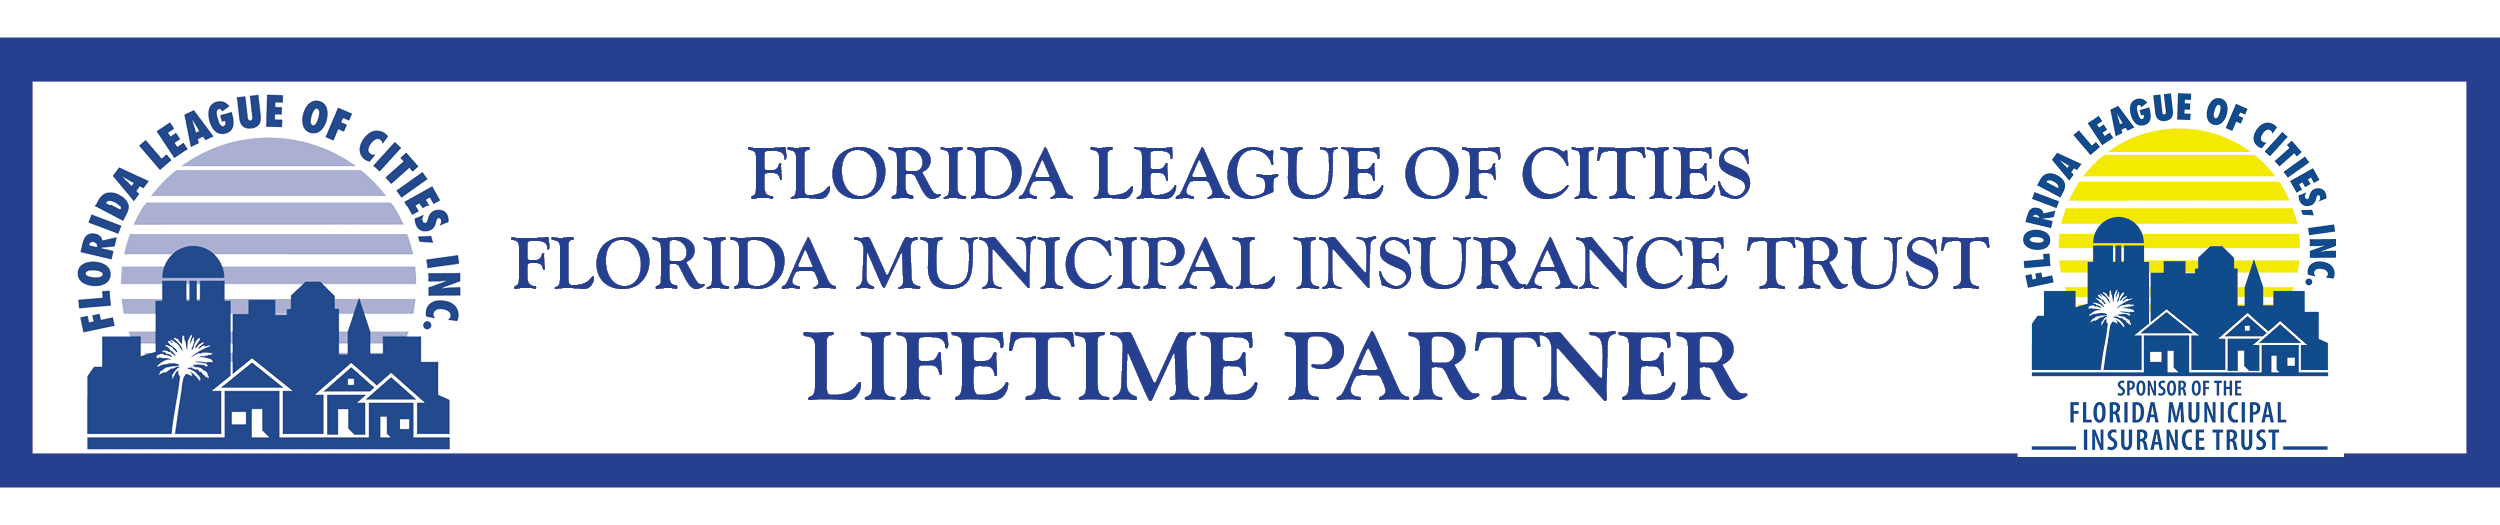 Florida League of Cities Florida Municipal Insurance Trust Lifetime Partner